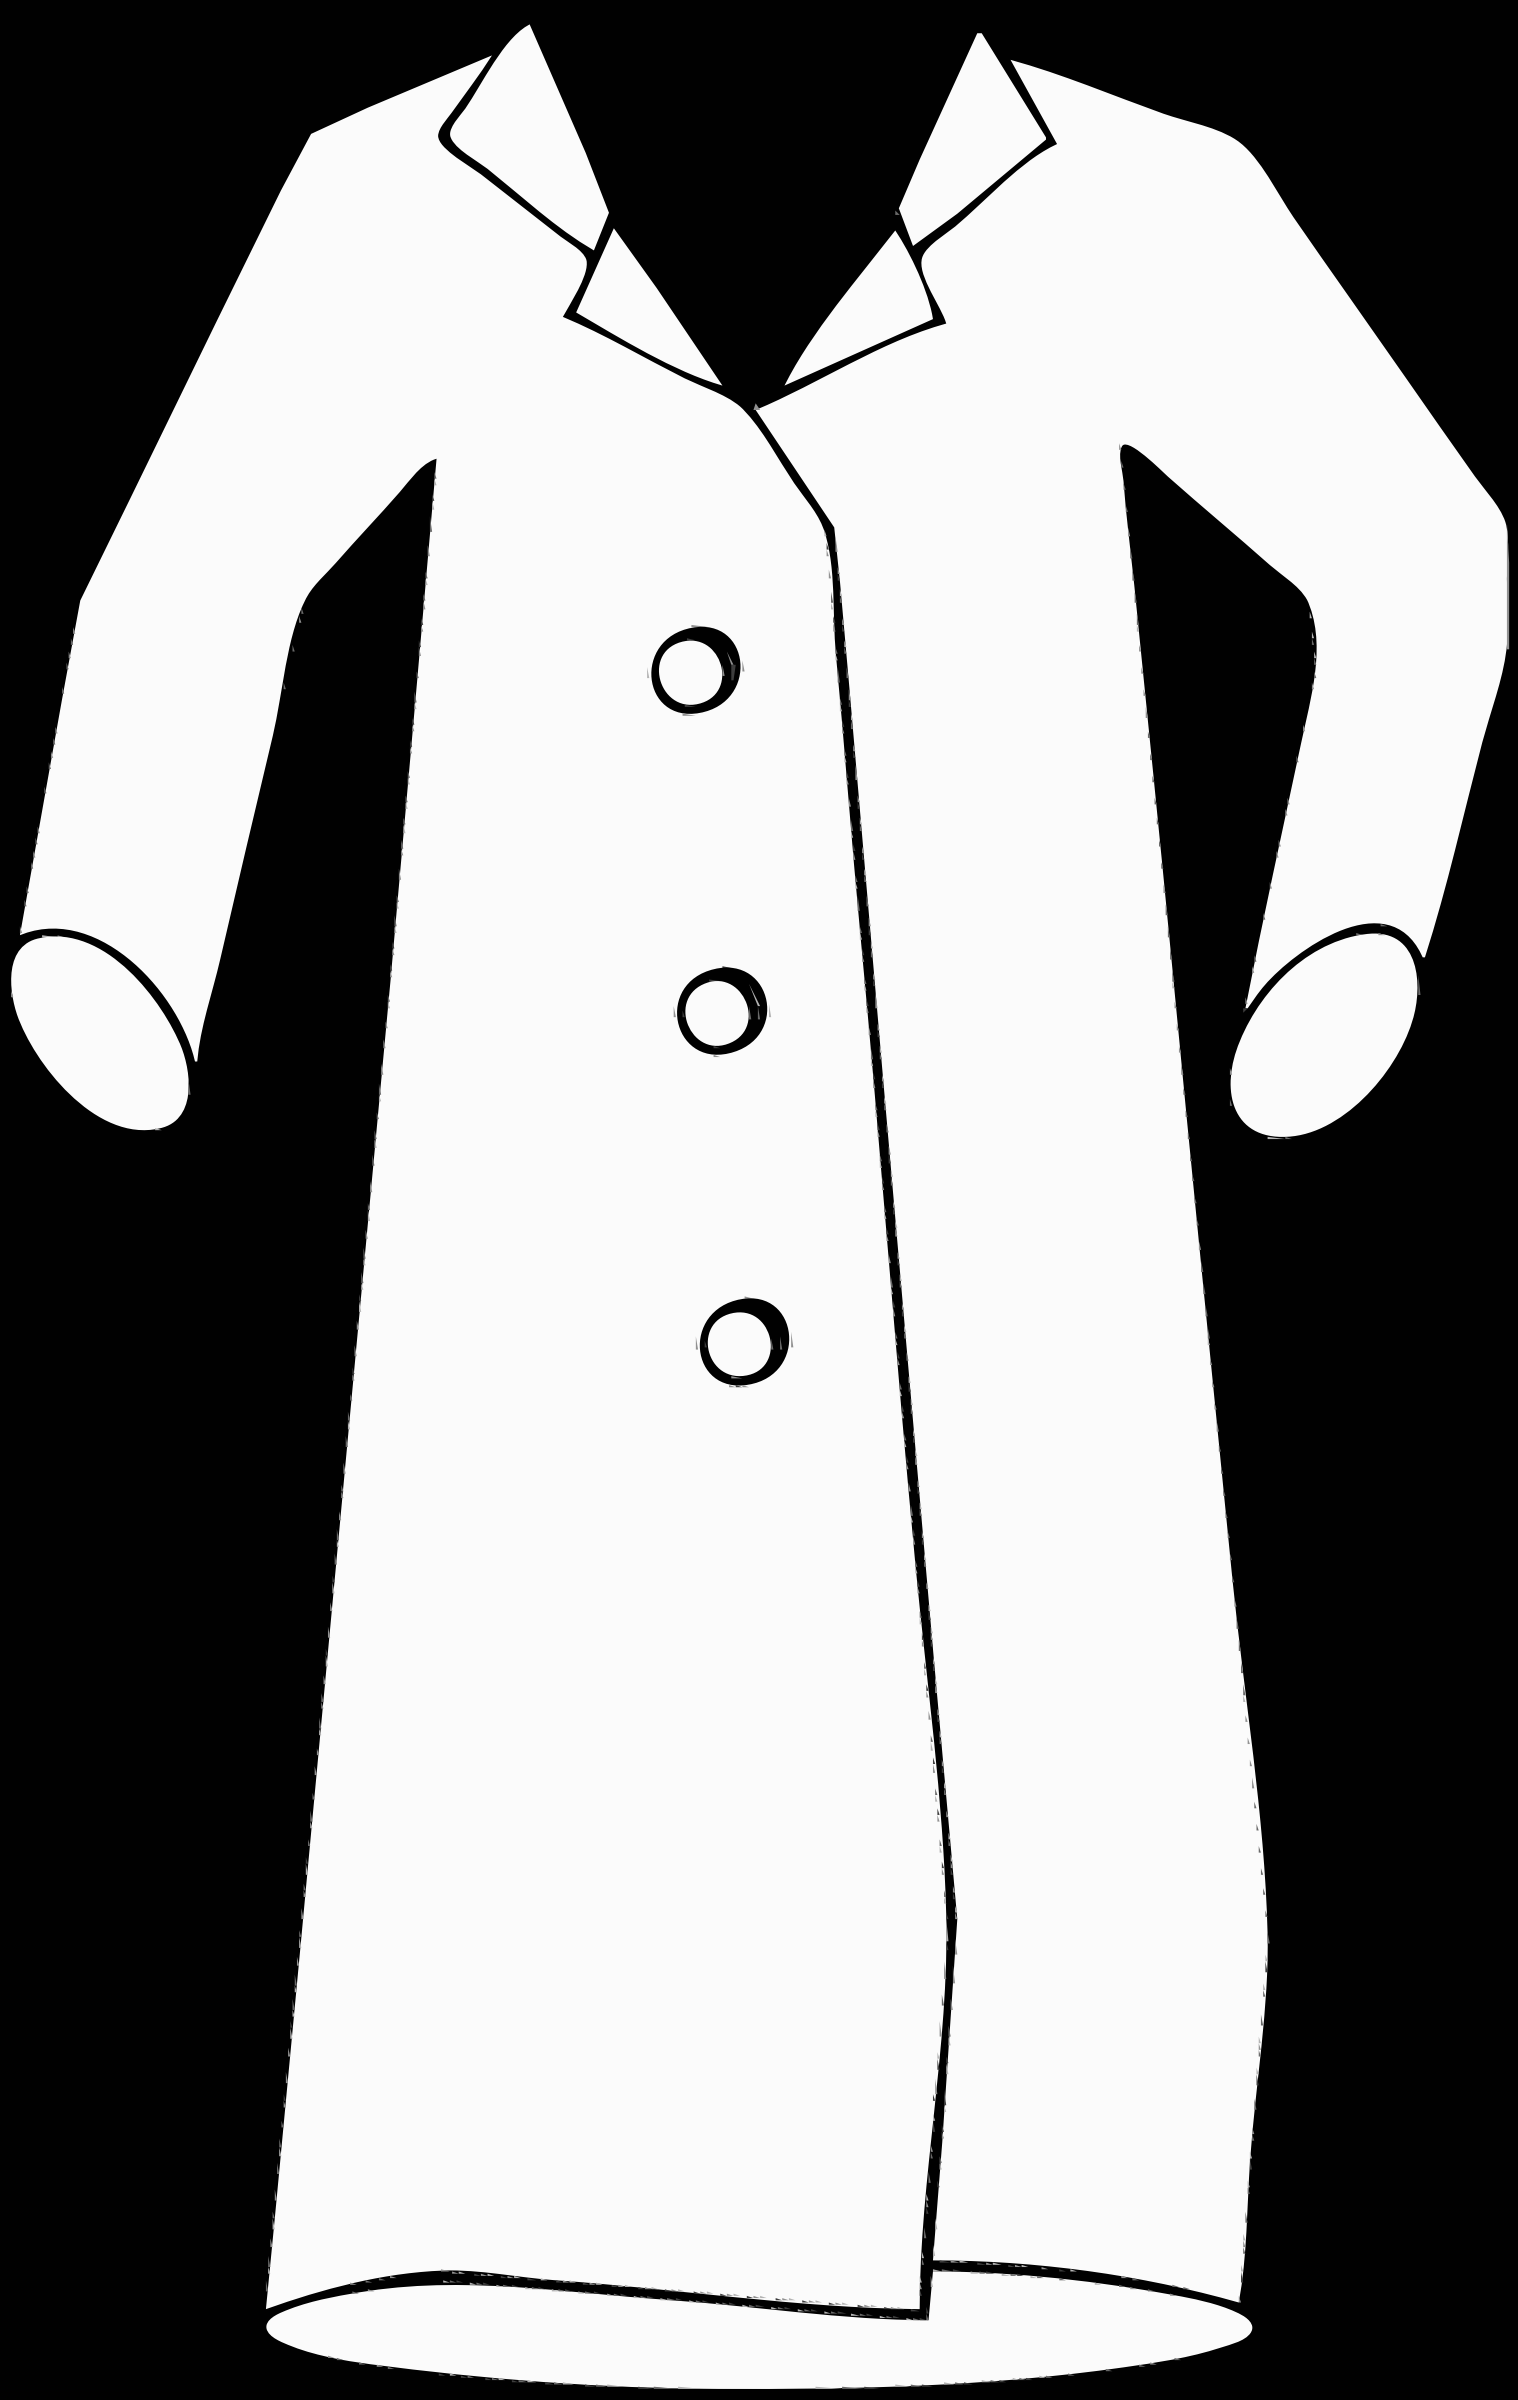 Guy in labcoat clipart clip transparent stock Free Lab Coat Cliparts, Download Free Clip Art, Free Clip Art on ... clip transparent stock